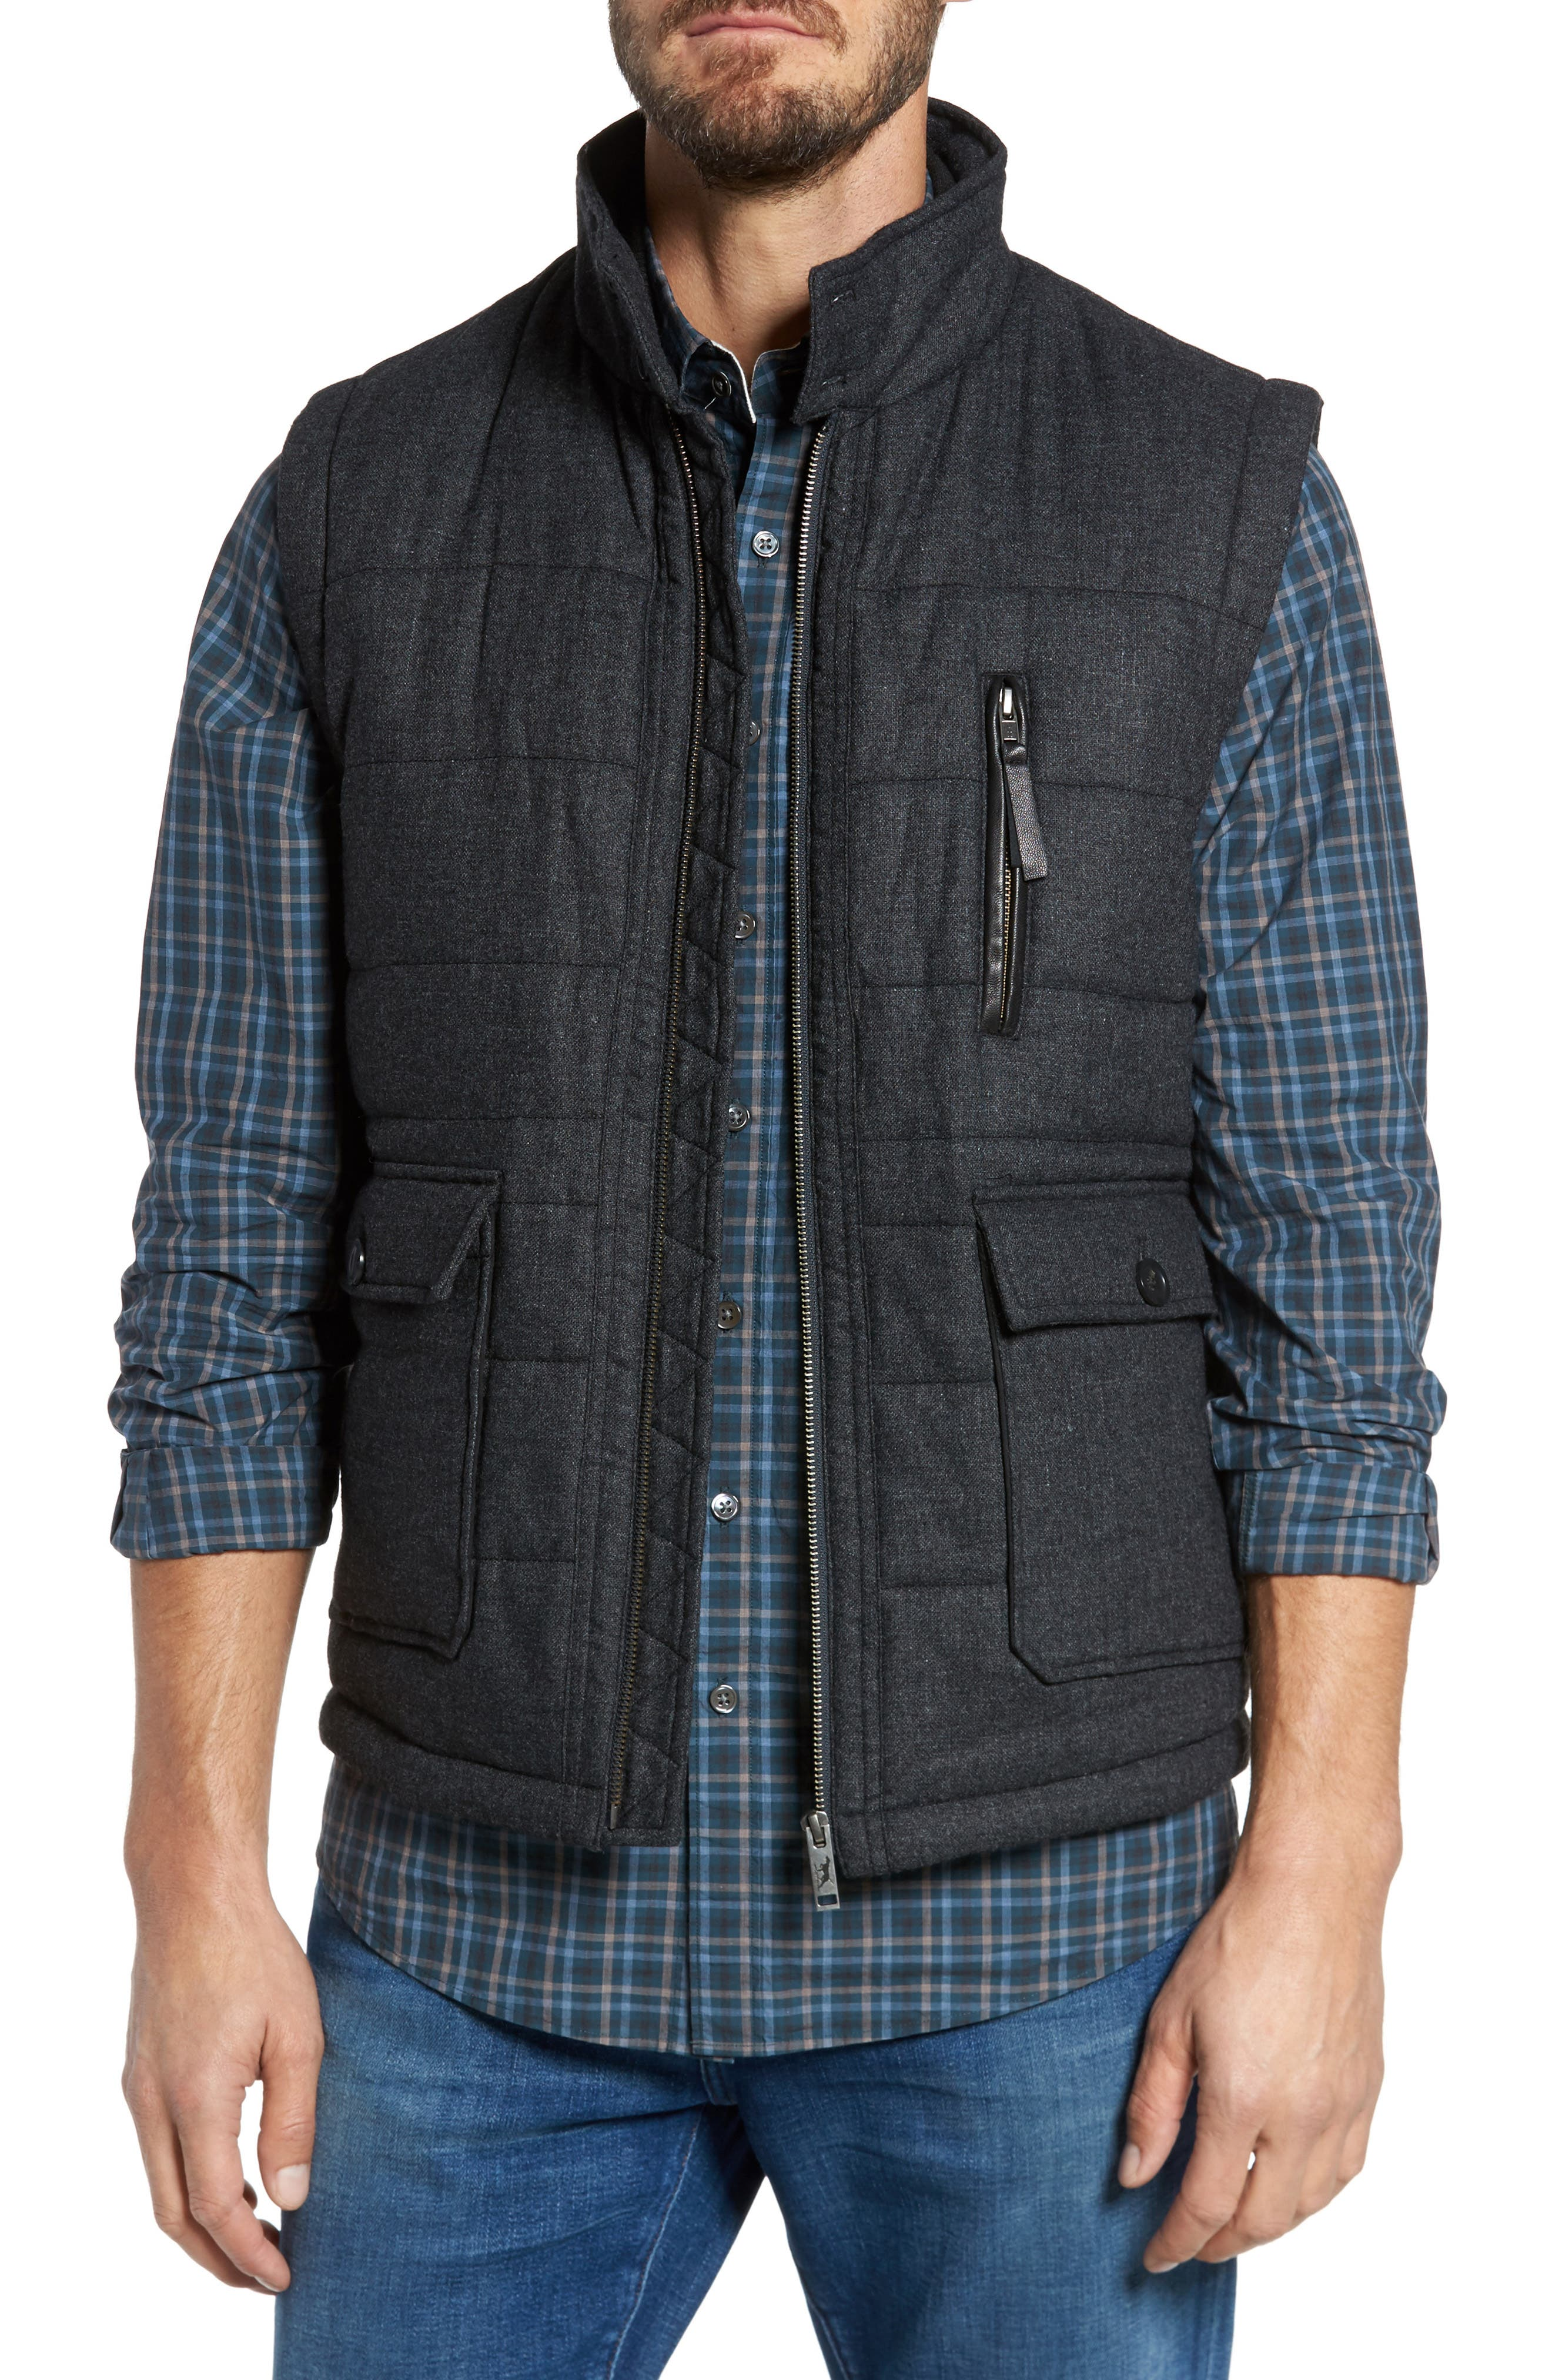 Johnsonville Quilted Vest,                             Main thumbnail 1, color,                             021